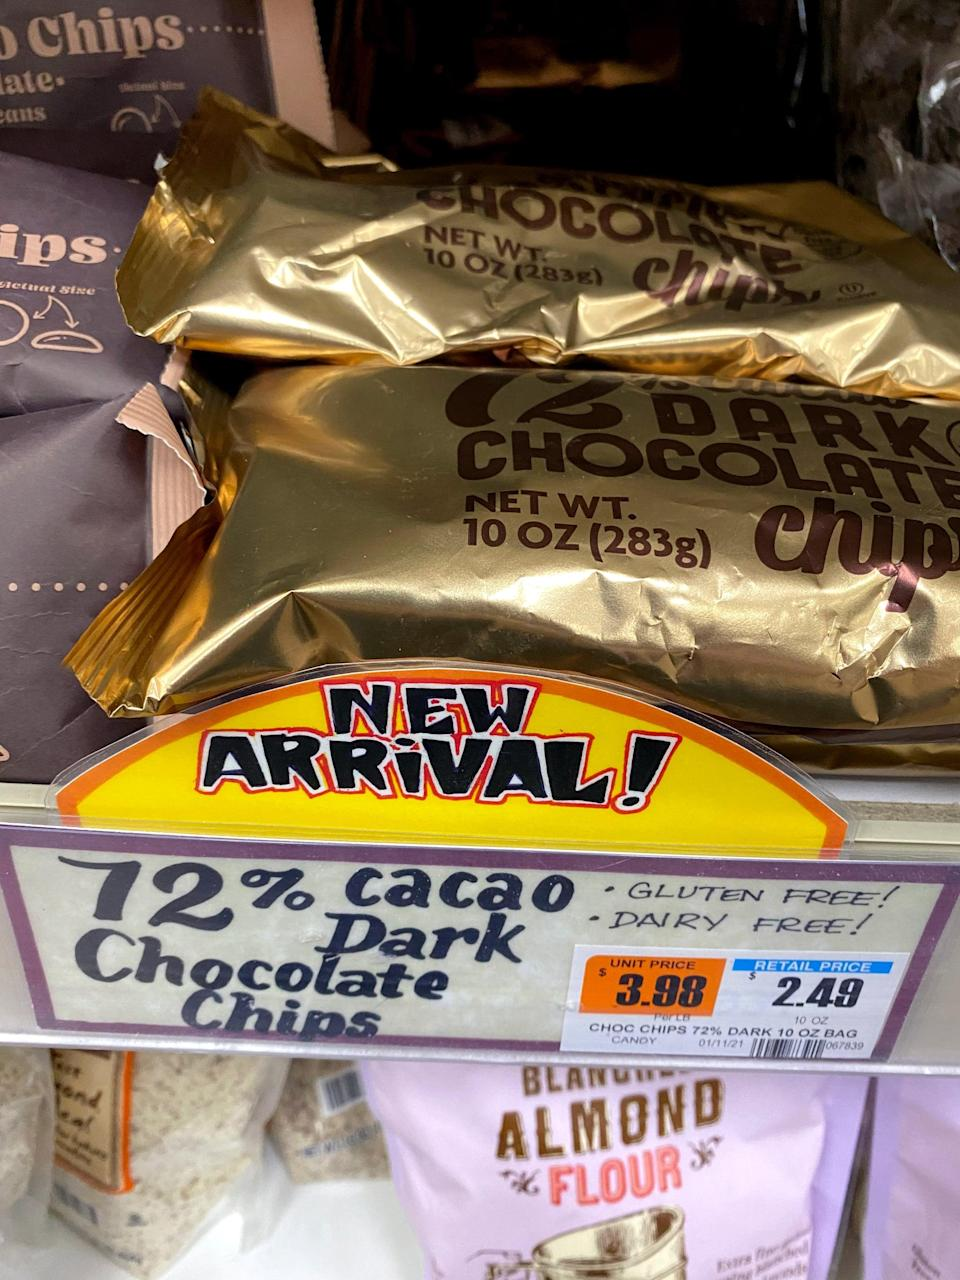 <p>One 10-ounce package of Trader's Joe's 72% Cacao Dark Chocolate Chips costs $2.50. The Semi-Sweet Chocolate chips are a litter cheaper at $2 for a 12-ounce bag. For a little extra money, the Dark Chocolate Chips are definitely worth it!</p>